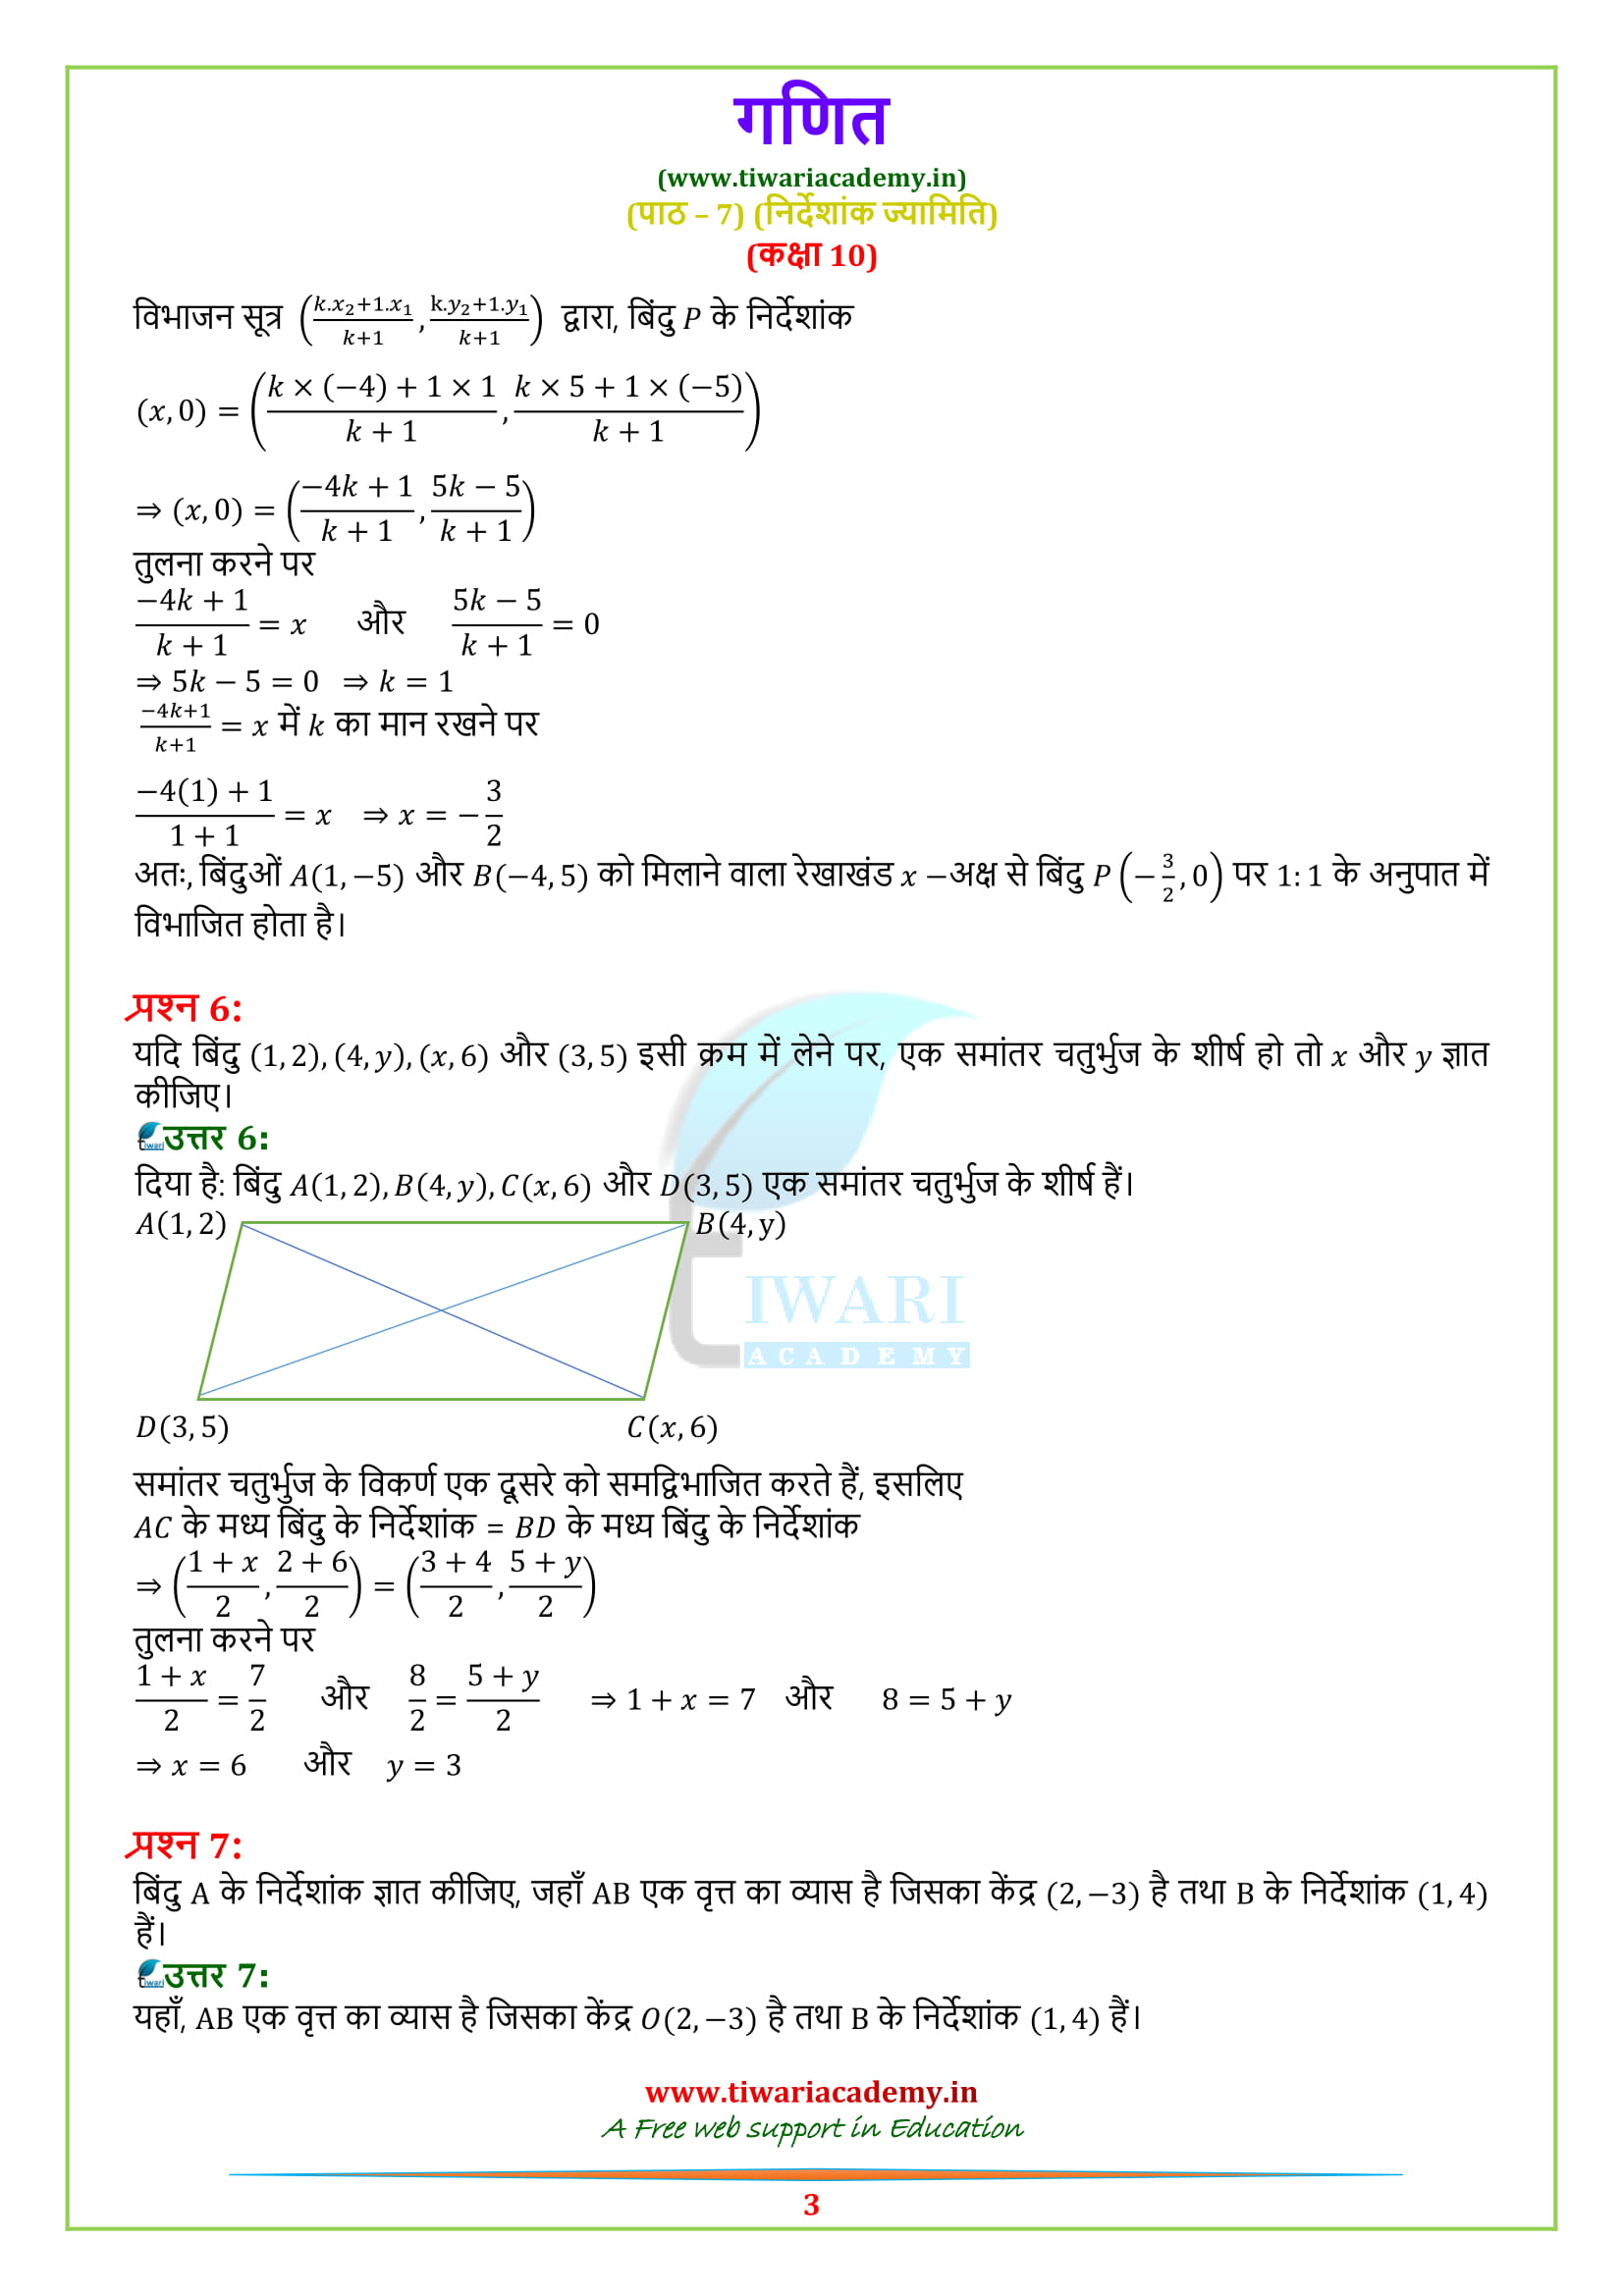 Class 10 Maths Exercise 7.2 Soluitons for up board high school